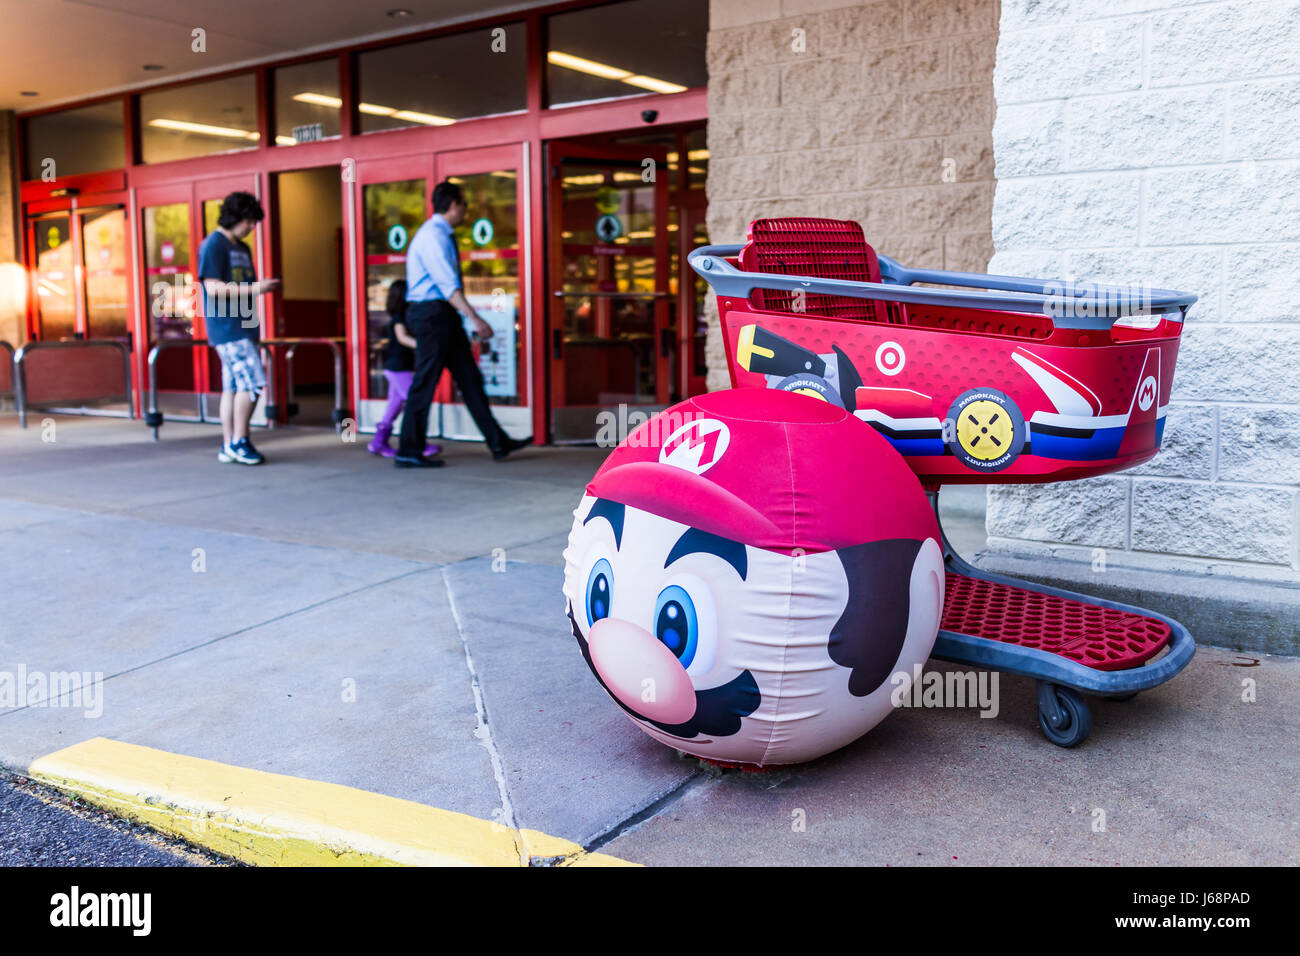 Fairfax, USA - May 9, 2017: Mario face on Target ball with